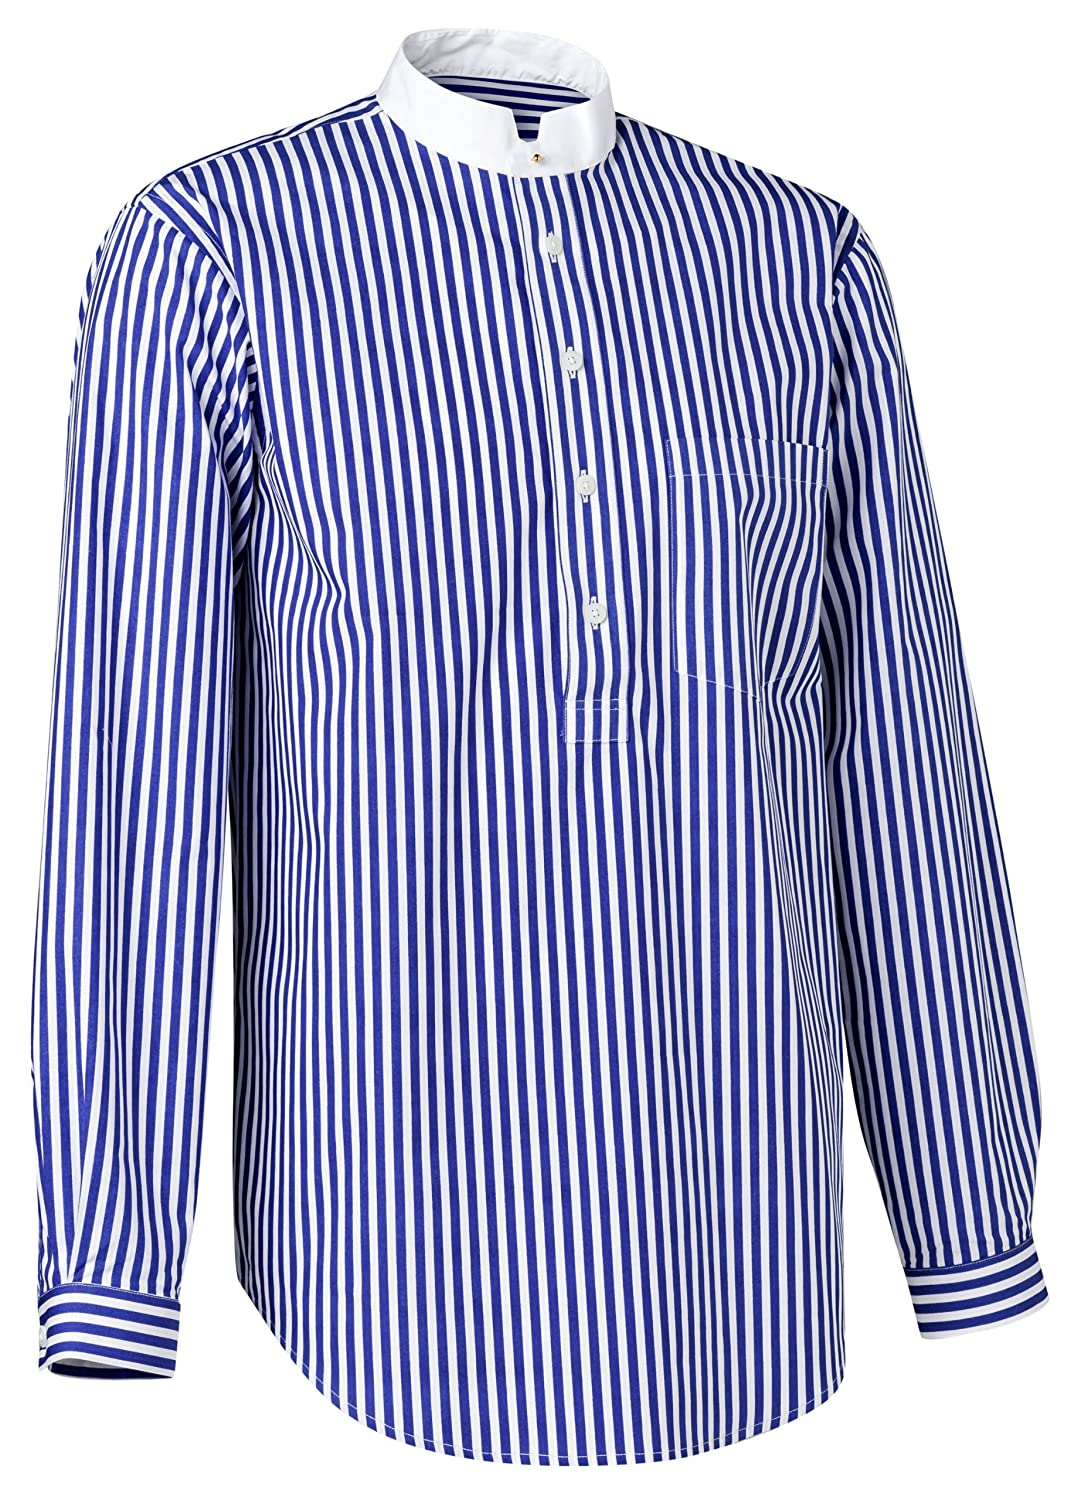 1920s Men's Dress Shirts Cinque Terre Pullover Shirt $112.70 AT vintagedancer.com